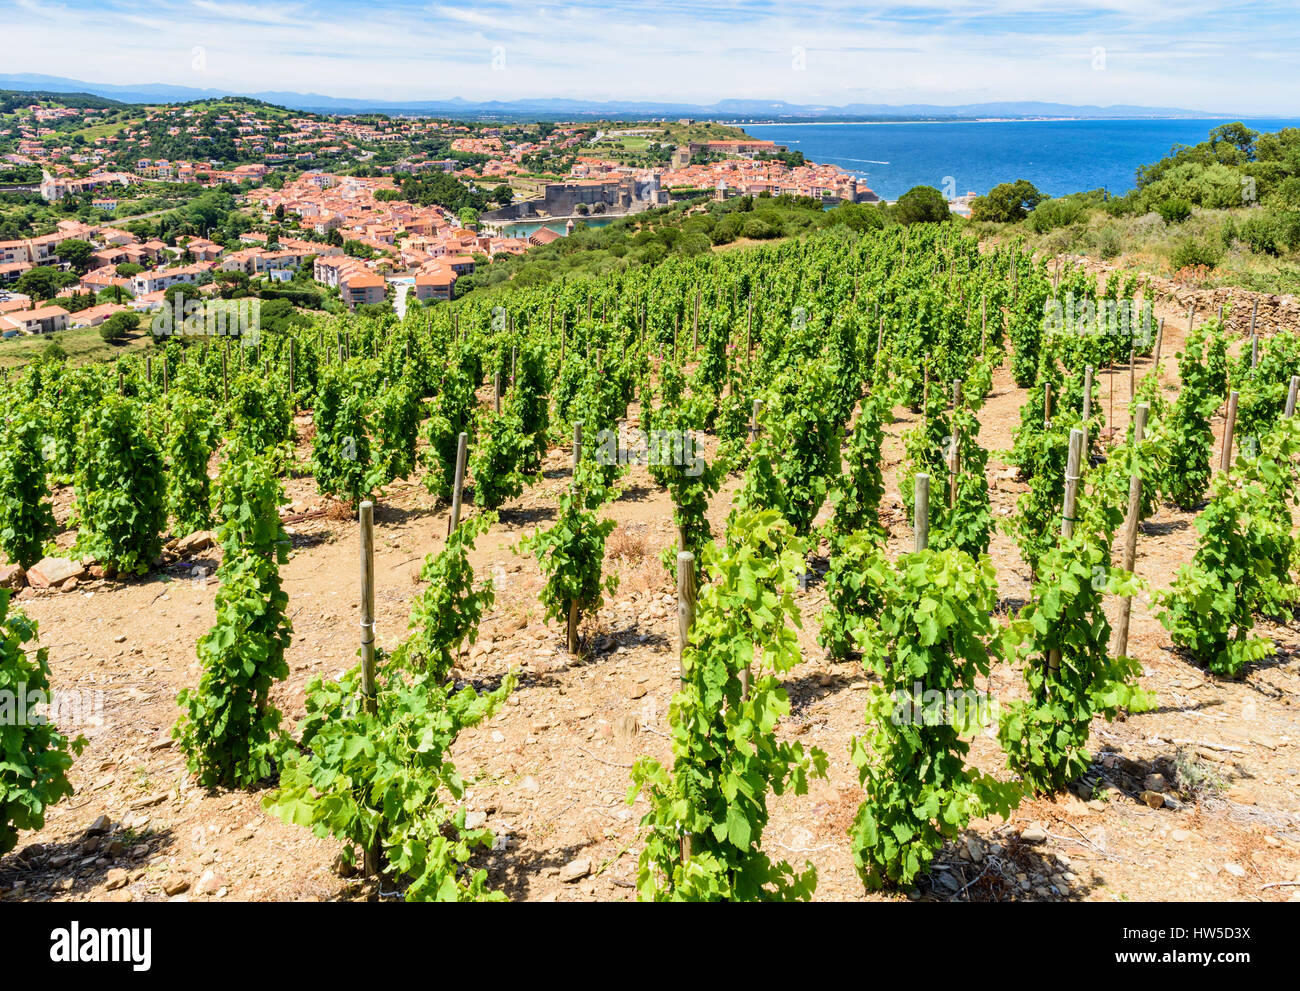 Vineyard grape vines overlooking the town of Collioure, Côte Vermeille, France - Stock Image